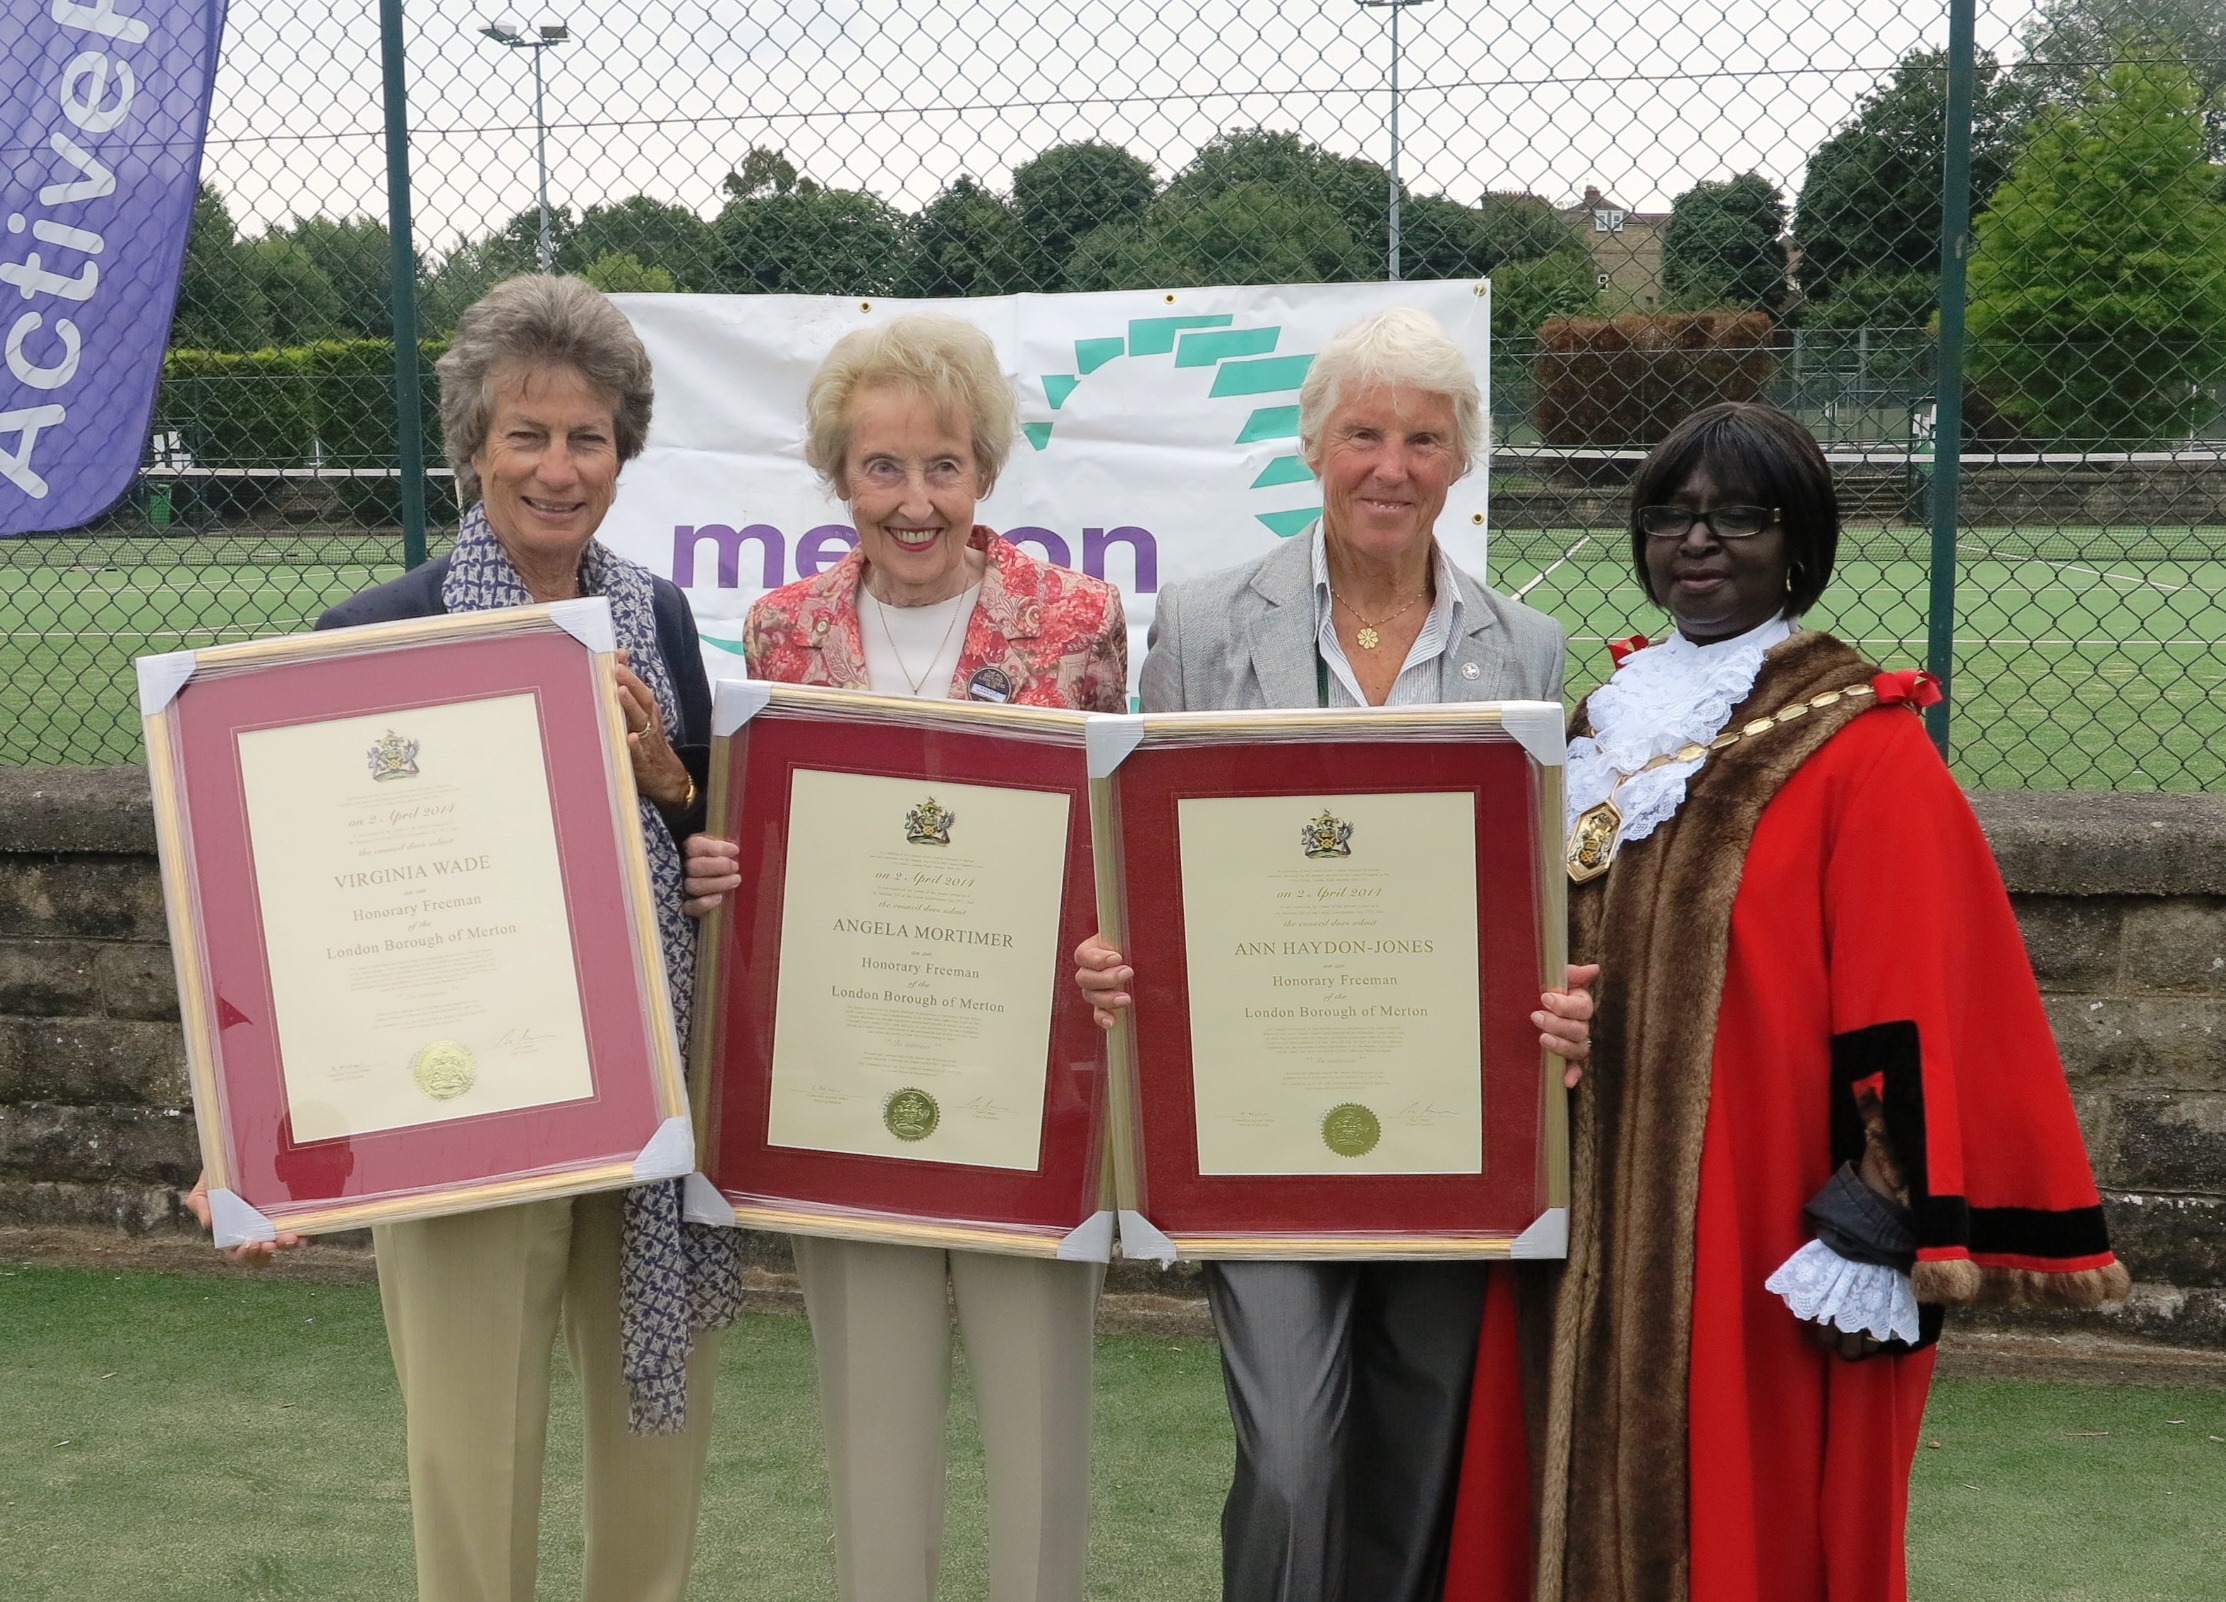 Former Wimbledon Champions awarded Freedom of Merton